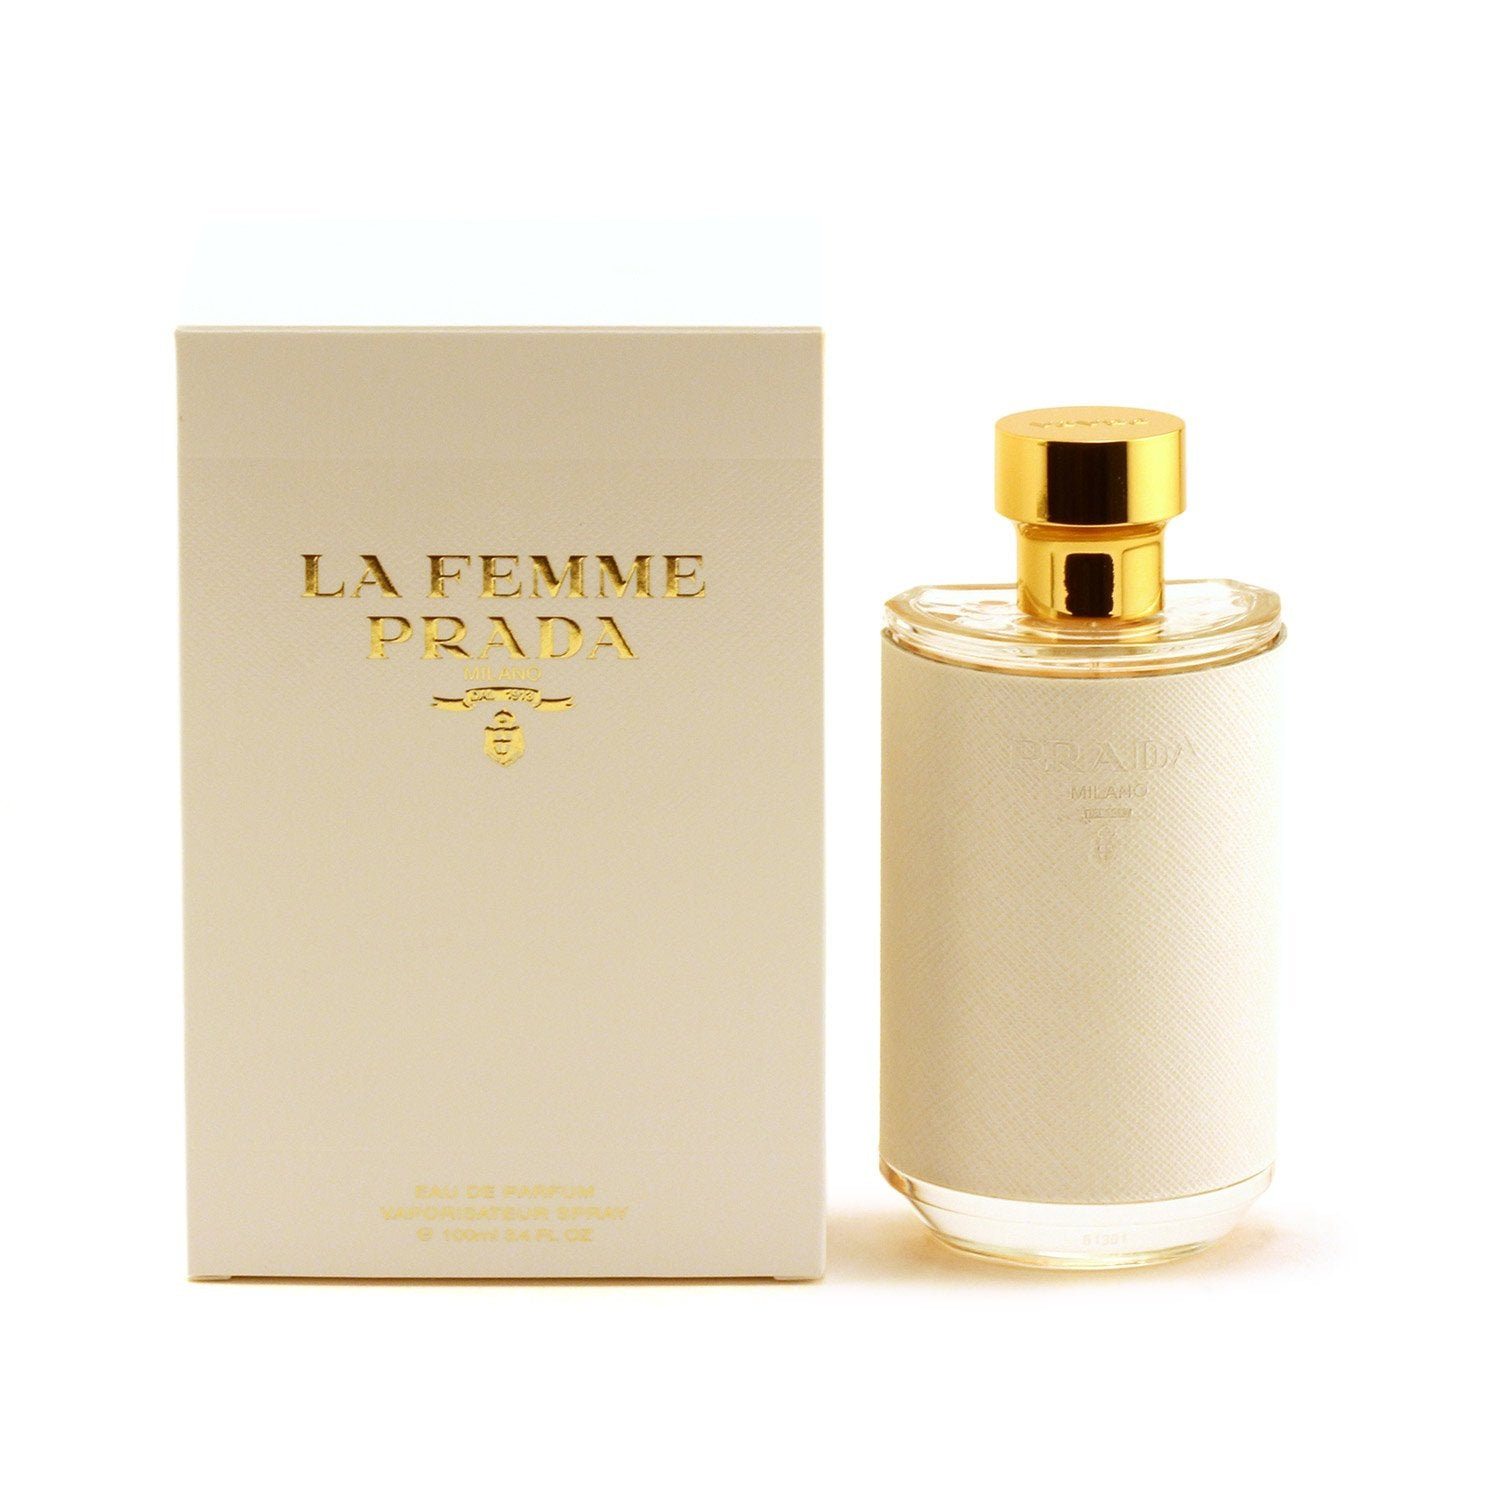 Perfume - PRADA LA FEMME FOR WOMEN - EAU DE PARFUM SPRAY, 3.4 OZ